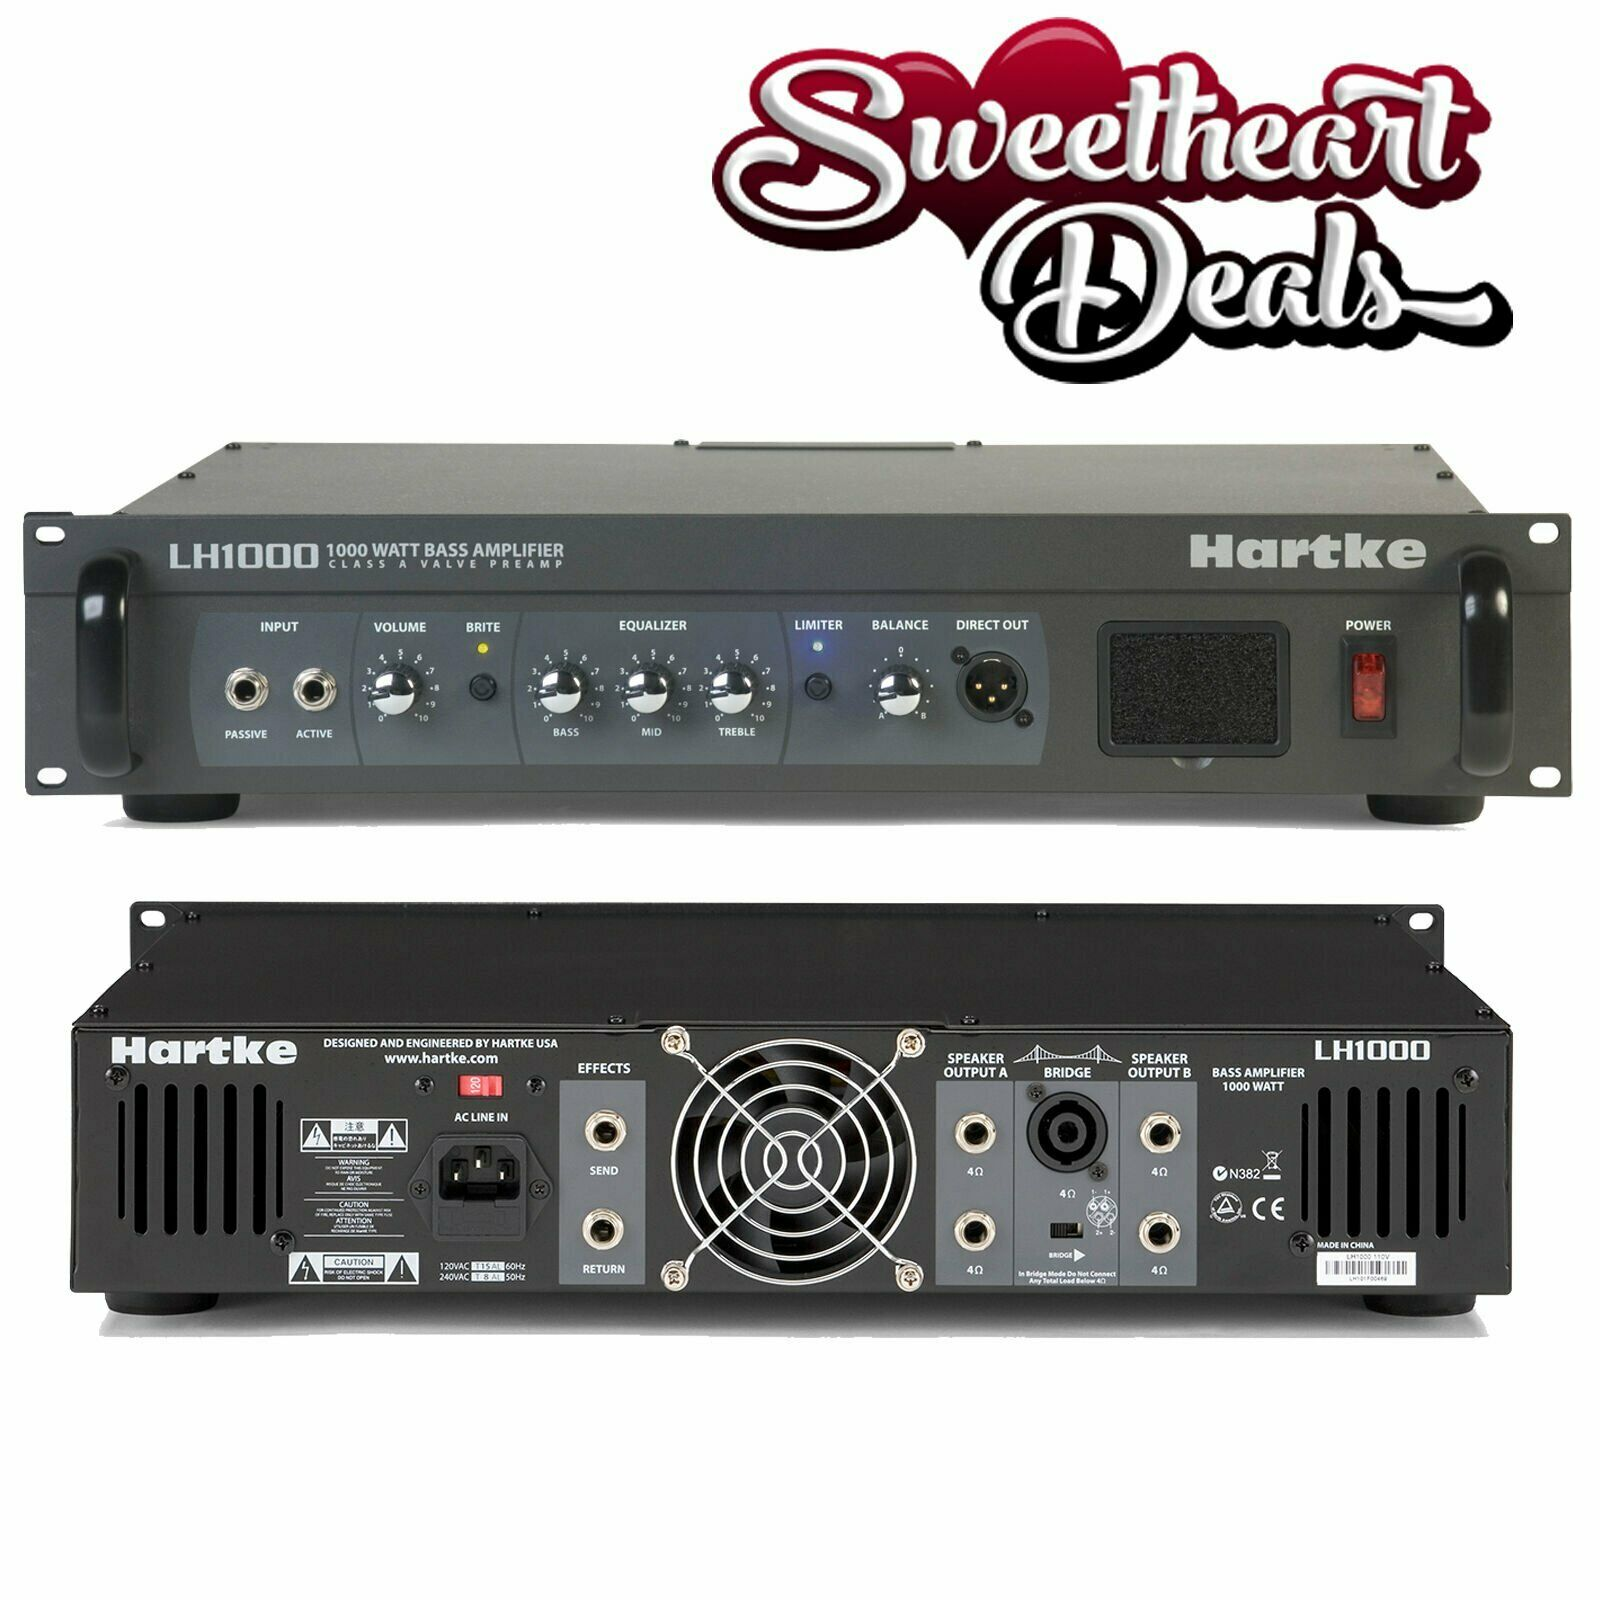 Hartke Lh1000 1000w Bass Guitar Amplifier Head Class A Tube Preamp Pre Amp Circuit 1 Of 4only 2 Available See More